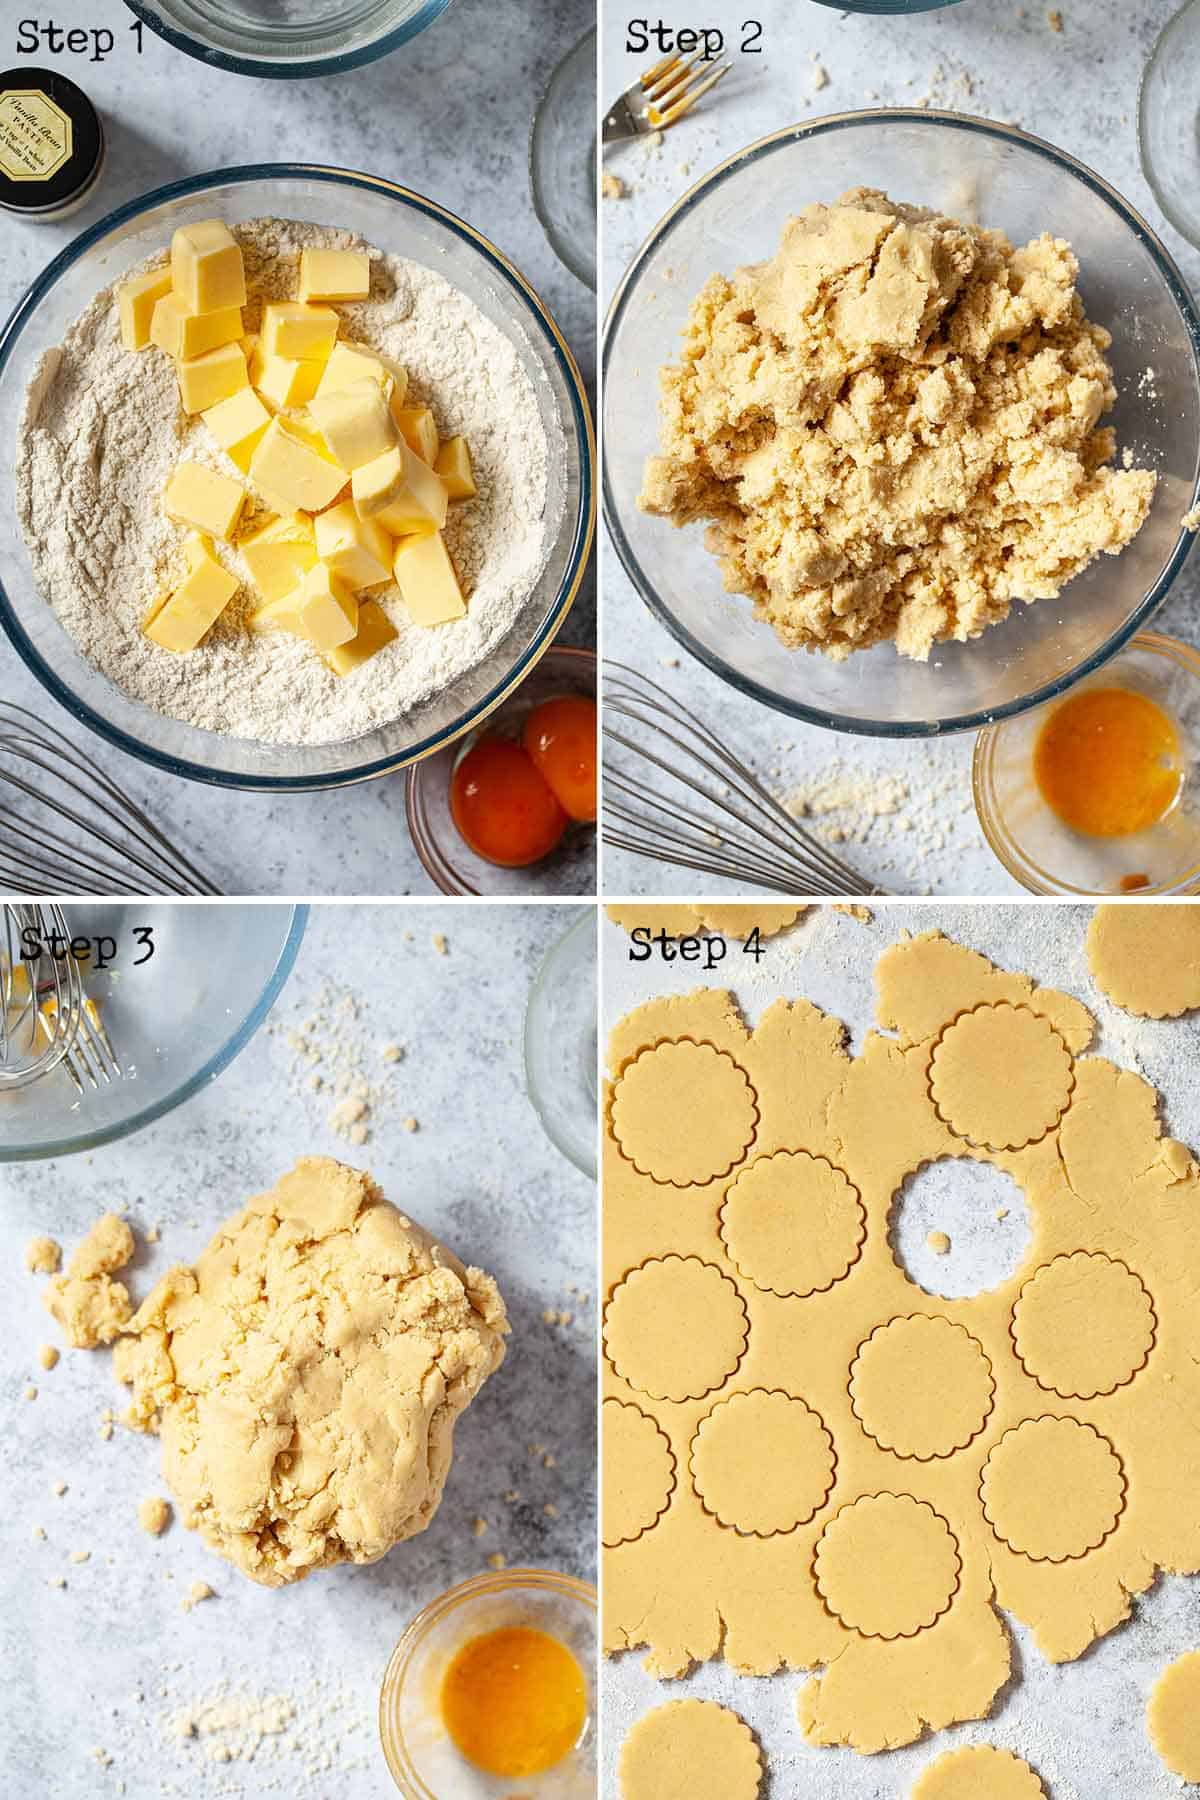 Step by step collage showing shortbread cookies being made